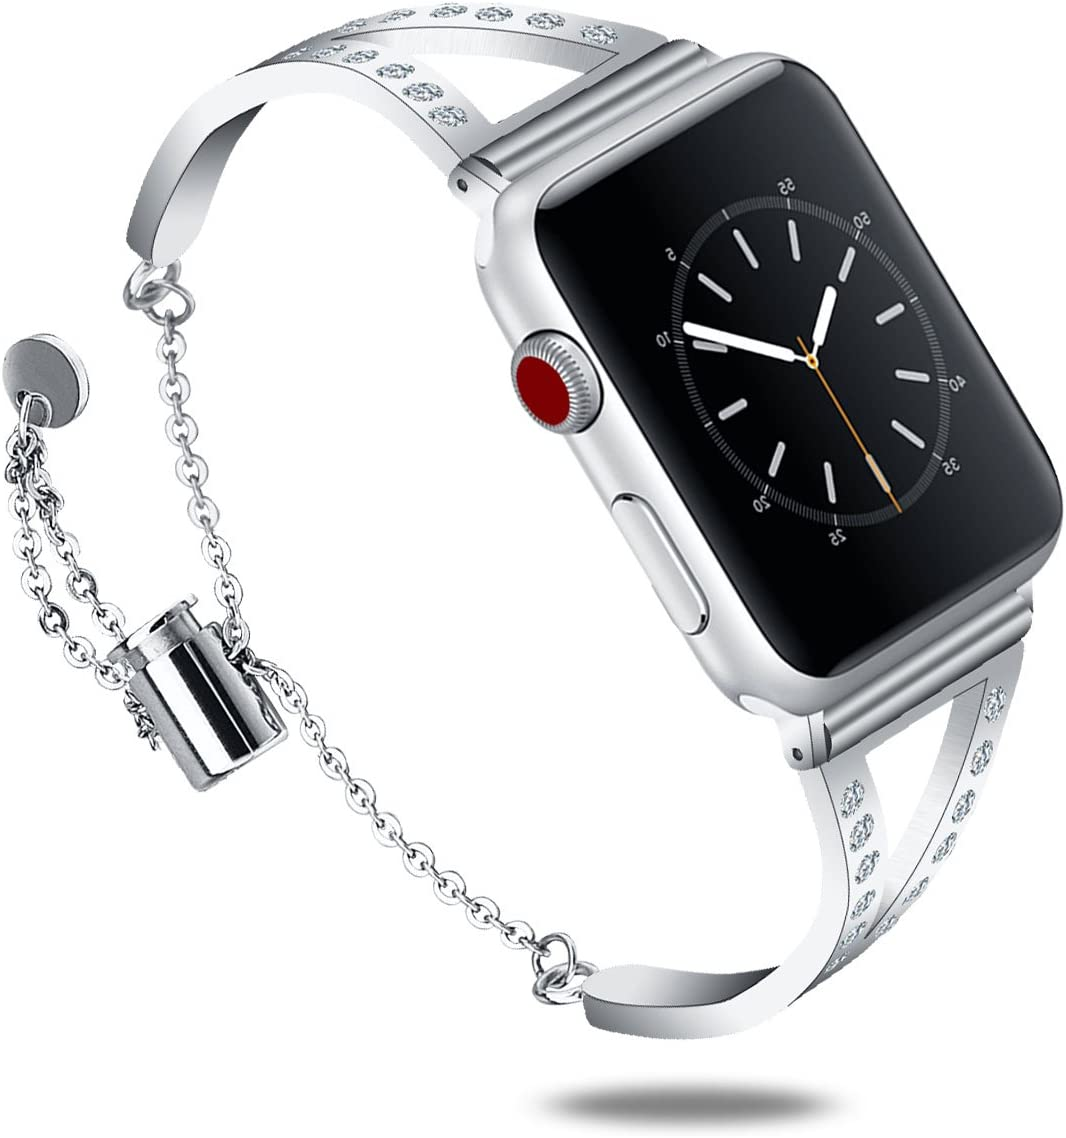 CAGOS Compatible with Apple Watch Band 38mm 40mm Women, Unique Metal Bracelet Classic Cuff Wristbands Stainless Steel Straps Replacement for Apple iWatch Series 5/4/3/2/1 (Silver, 38mm)